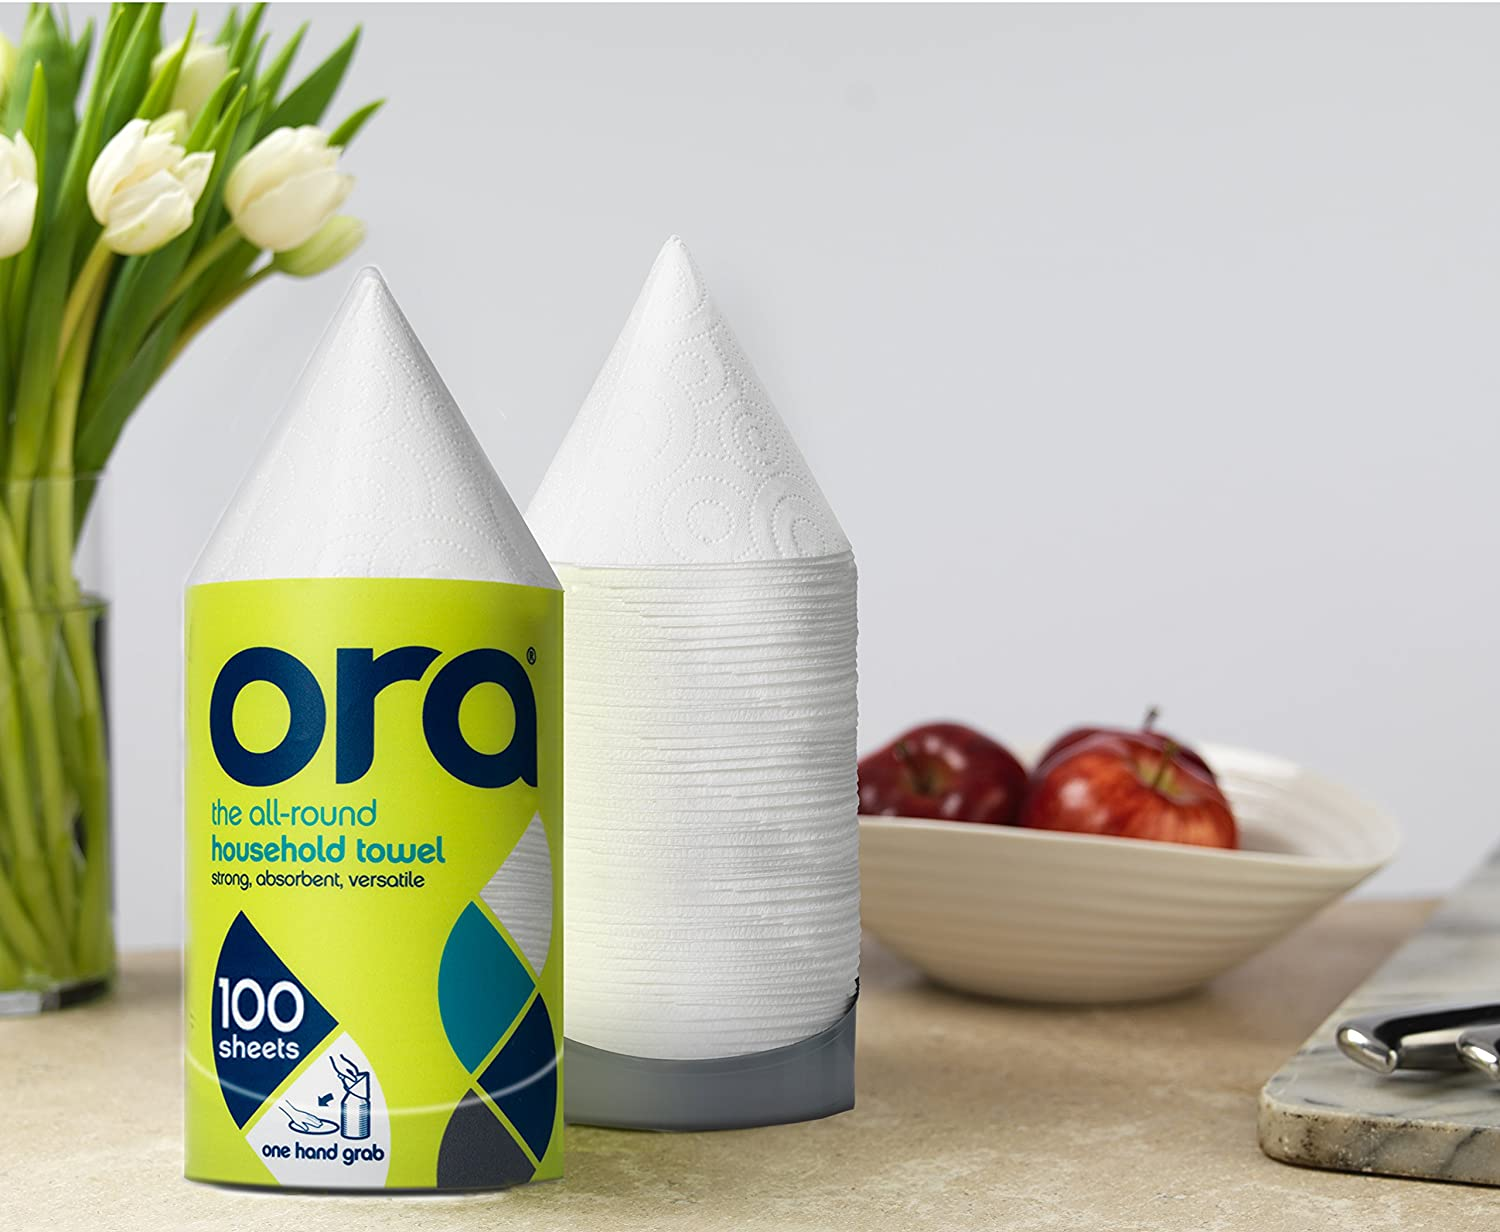 Amazon.com: Ora Paper Towels (single stack 100 sheets) - 3 Pack: Health & Personal Care